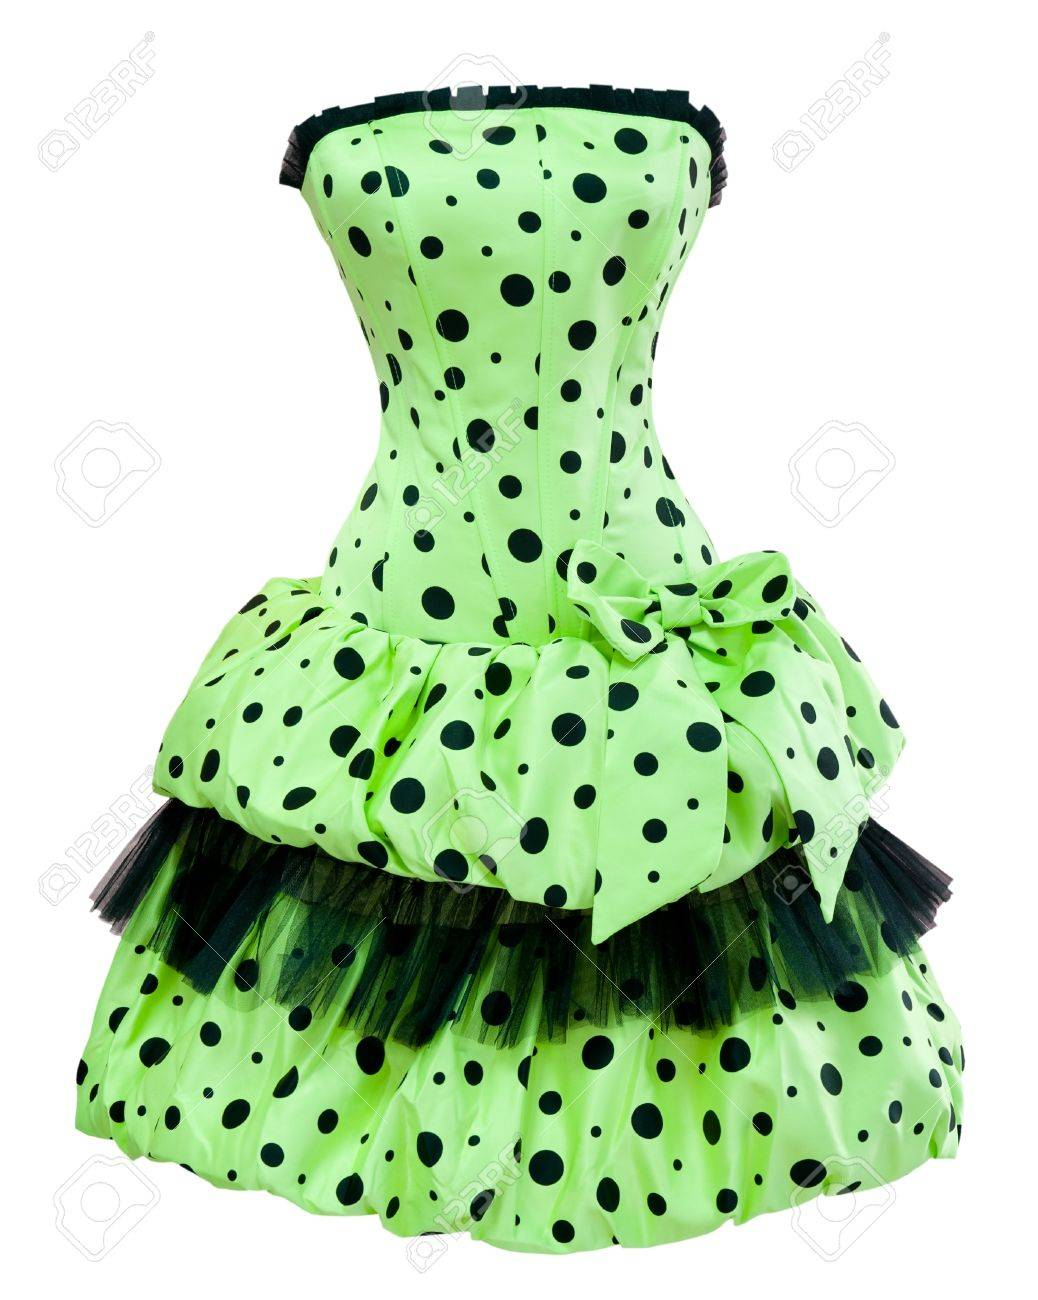 A Ladies Green Polka Dot Cocktail Dress With A Balloon Skirt ...